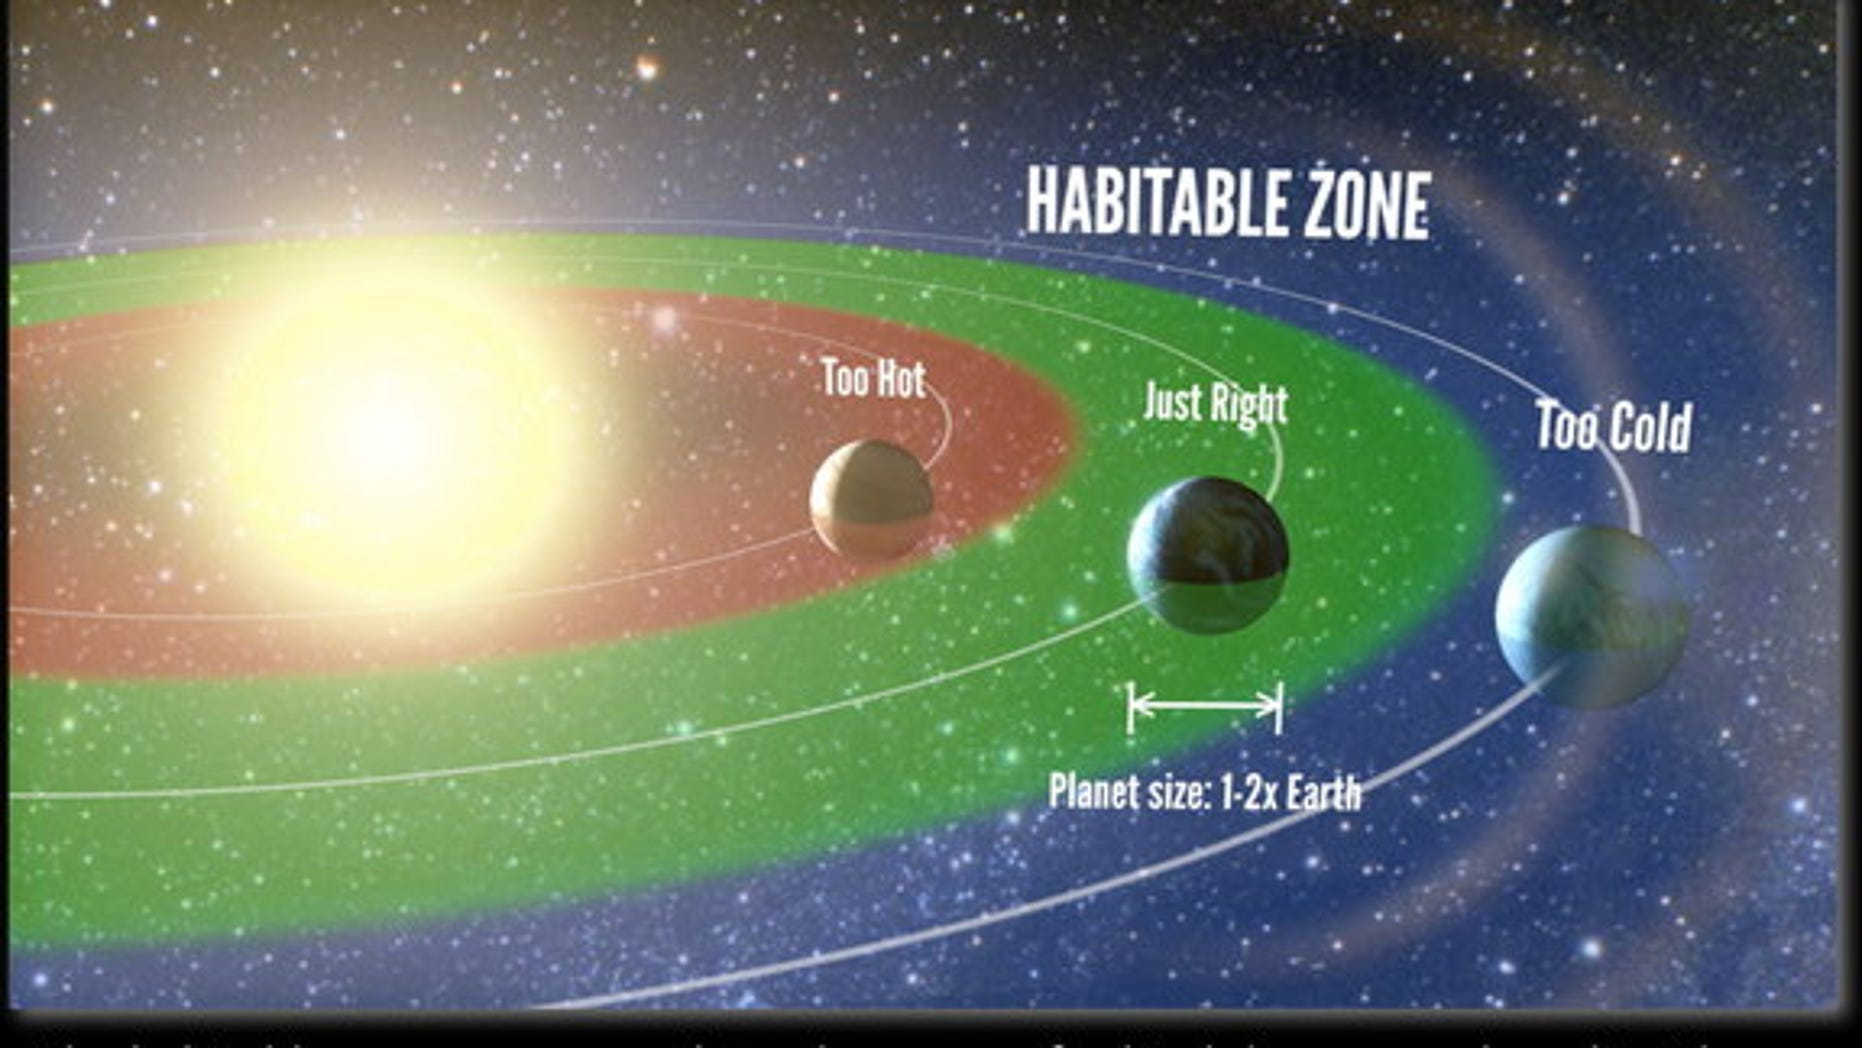 An artist's representation of the 'habitable zone,' the range of orbits around a star where liquid water may exist on the surface of a planet. A new study unveiled Nov. 4, 2013 suggests one in five sunlike stars seen by NASA's Kepler spacecraft